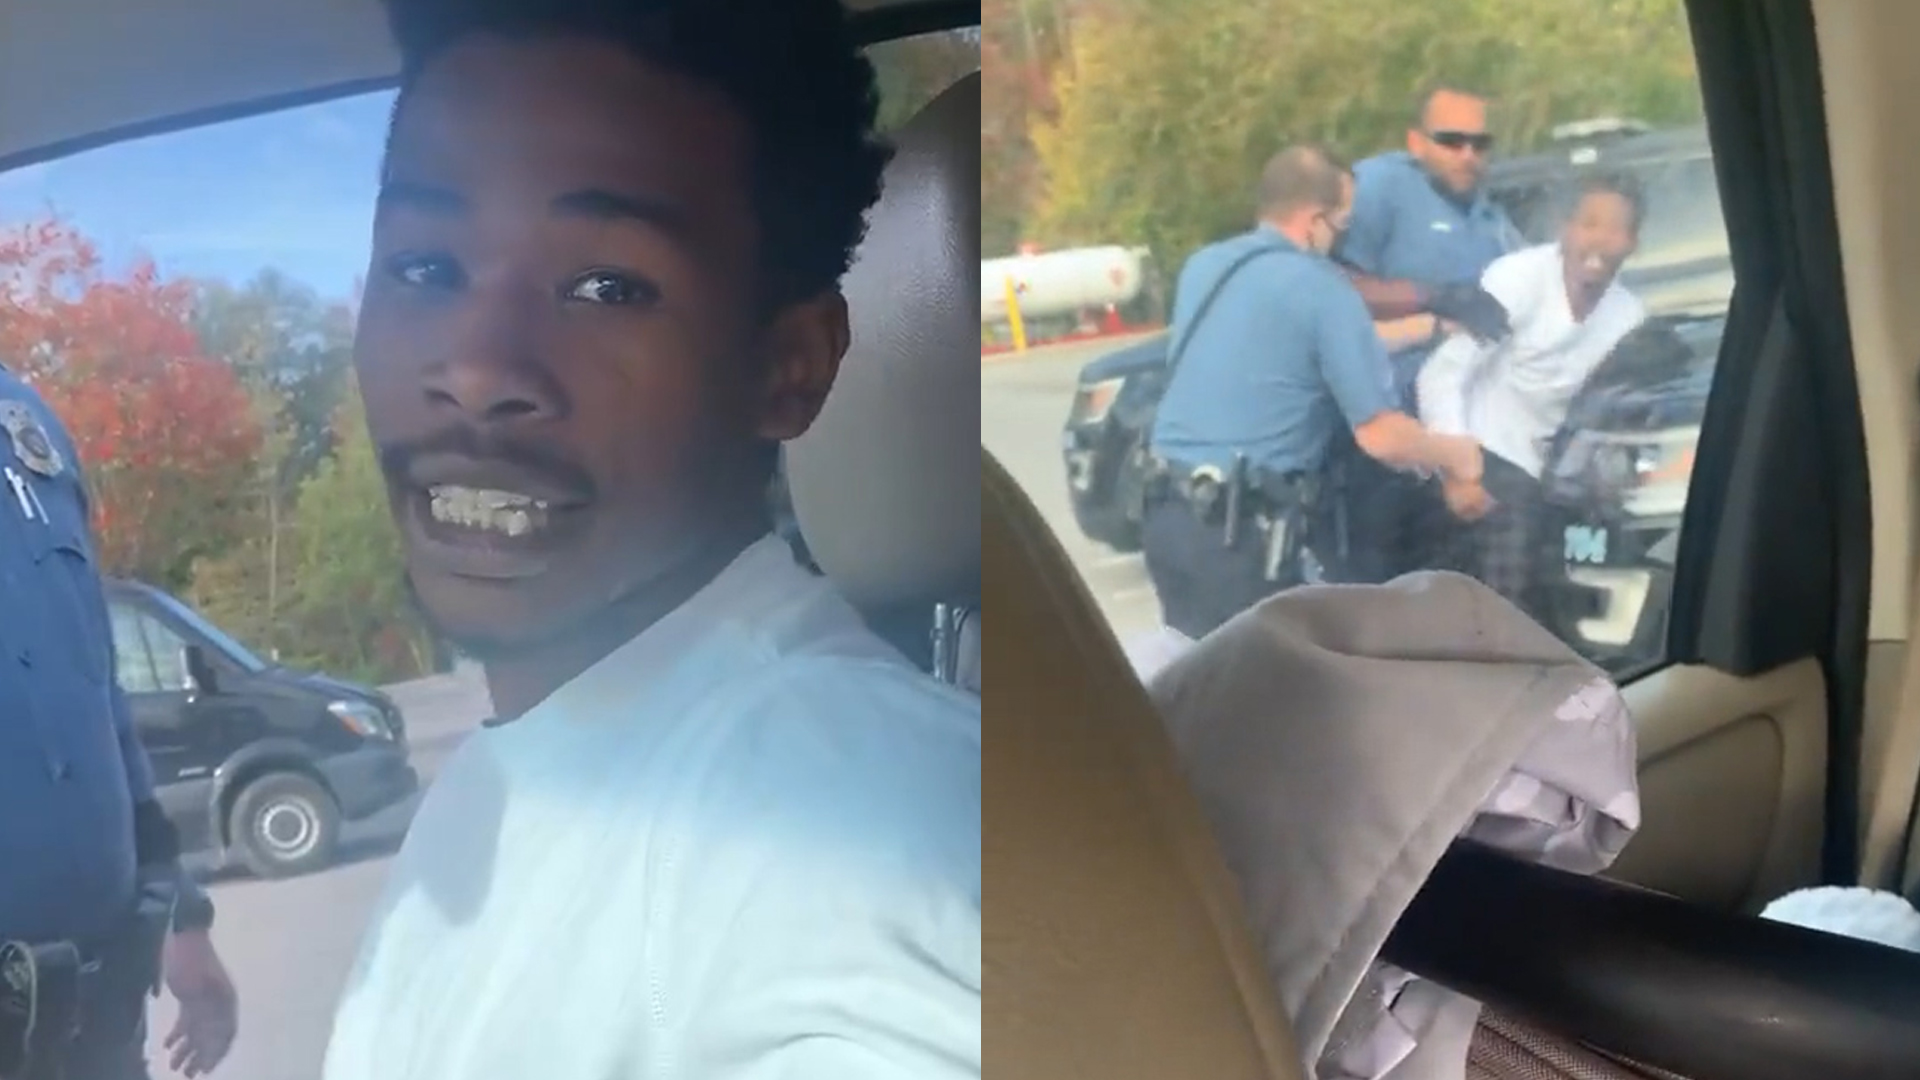 Officers Pull Over White Woman For Speeding But Arrest Her Black Boyfriend